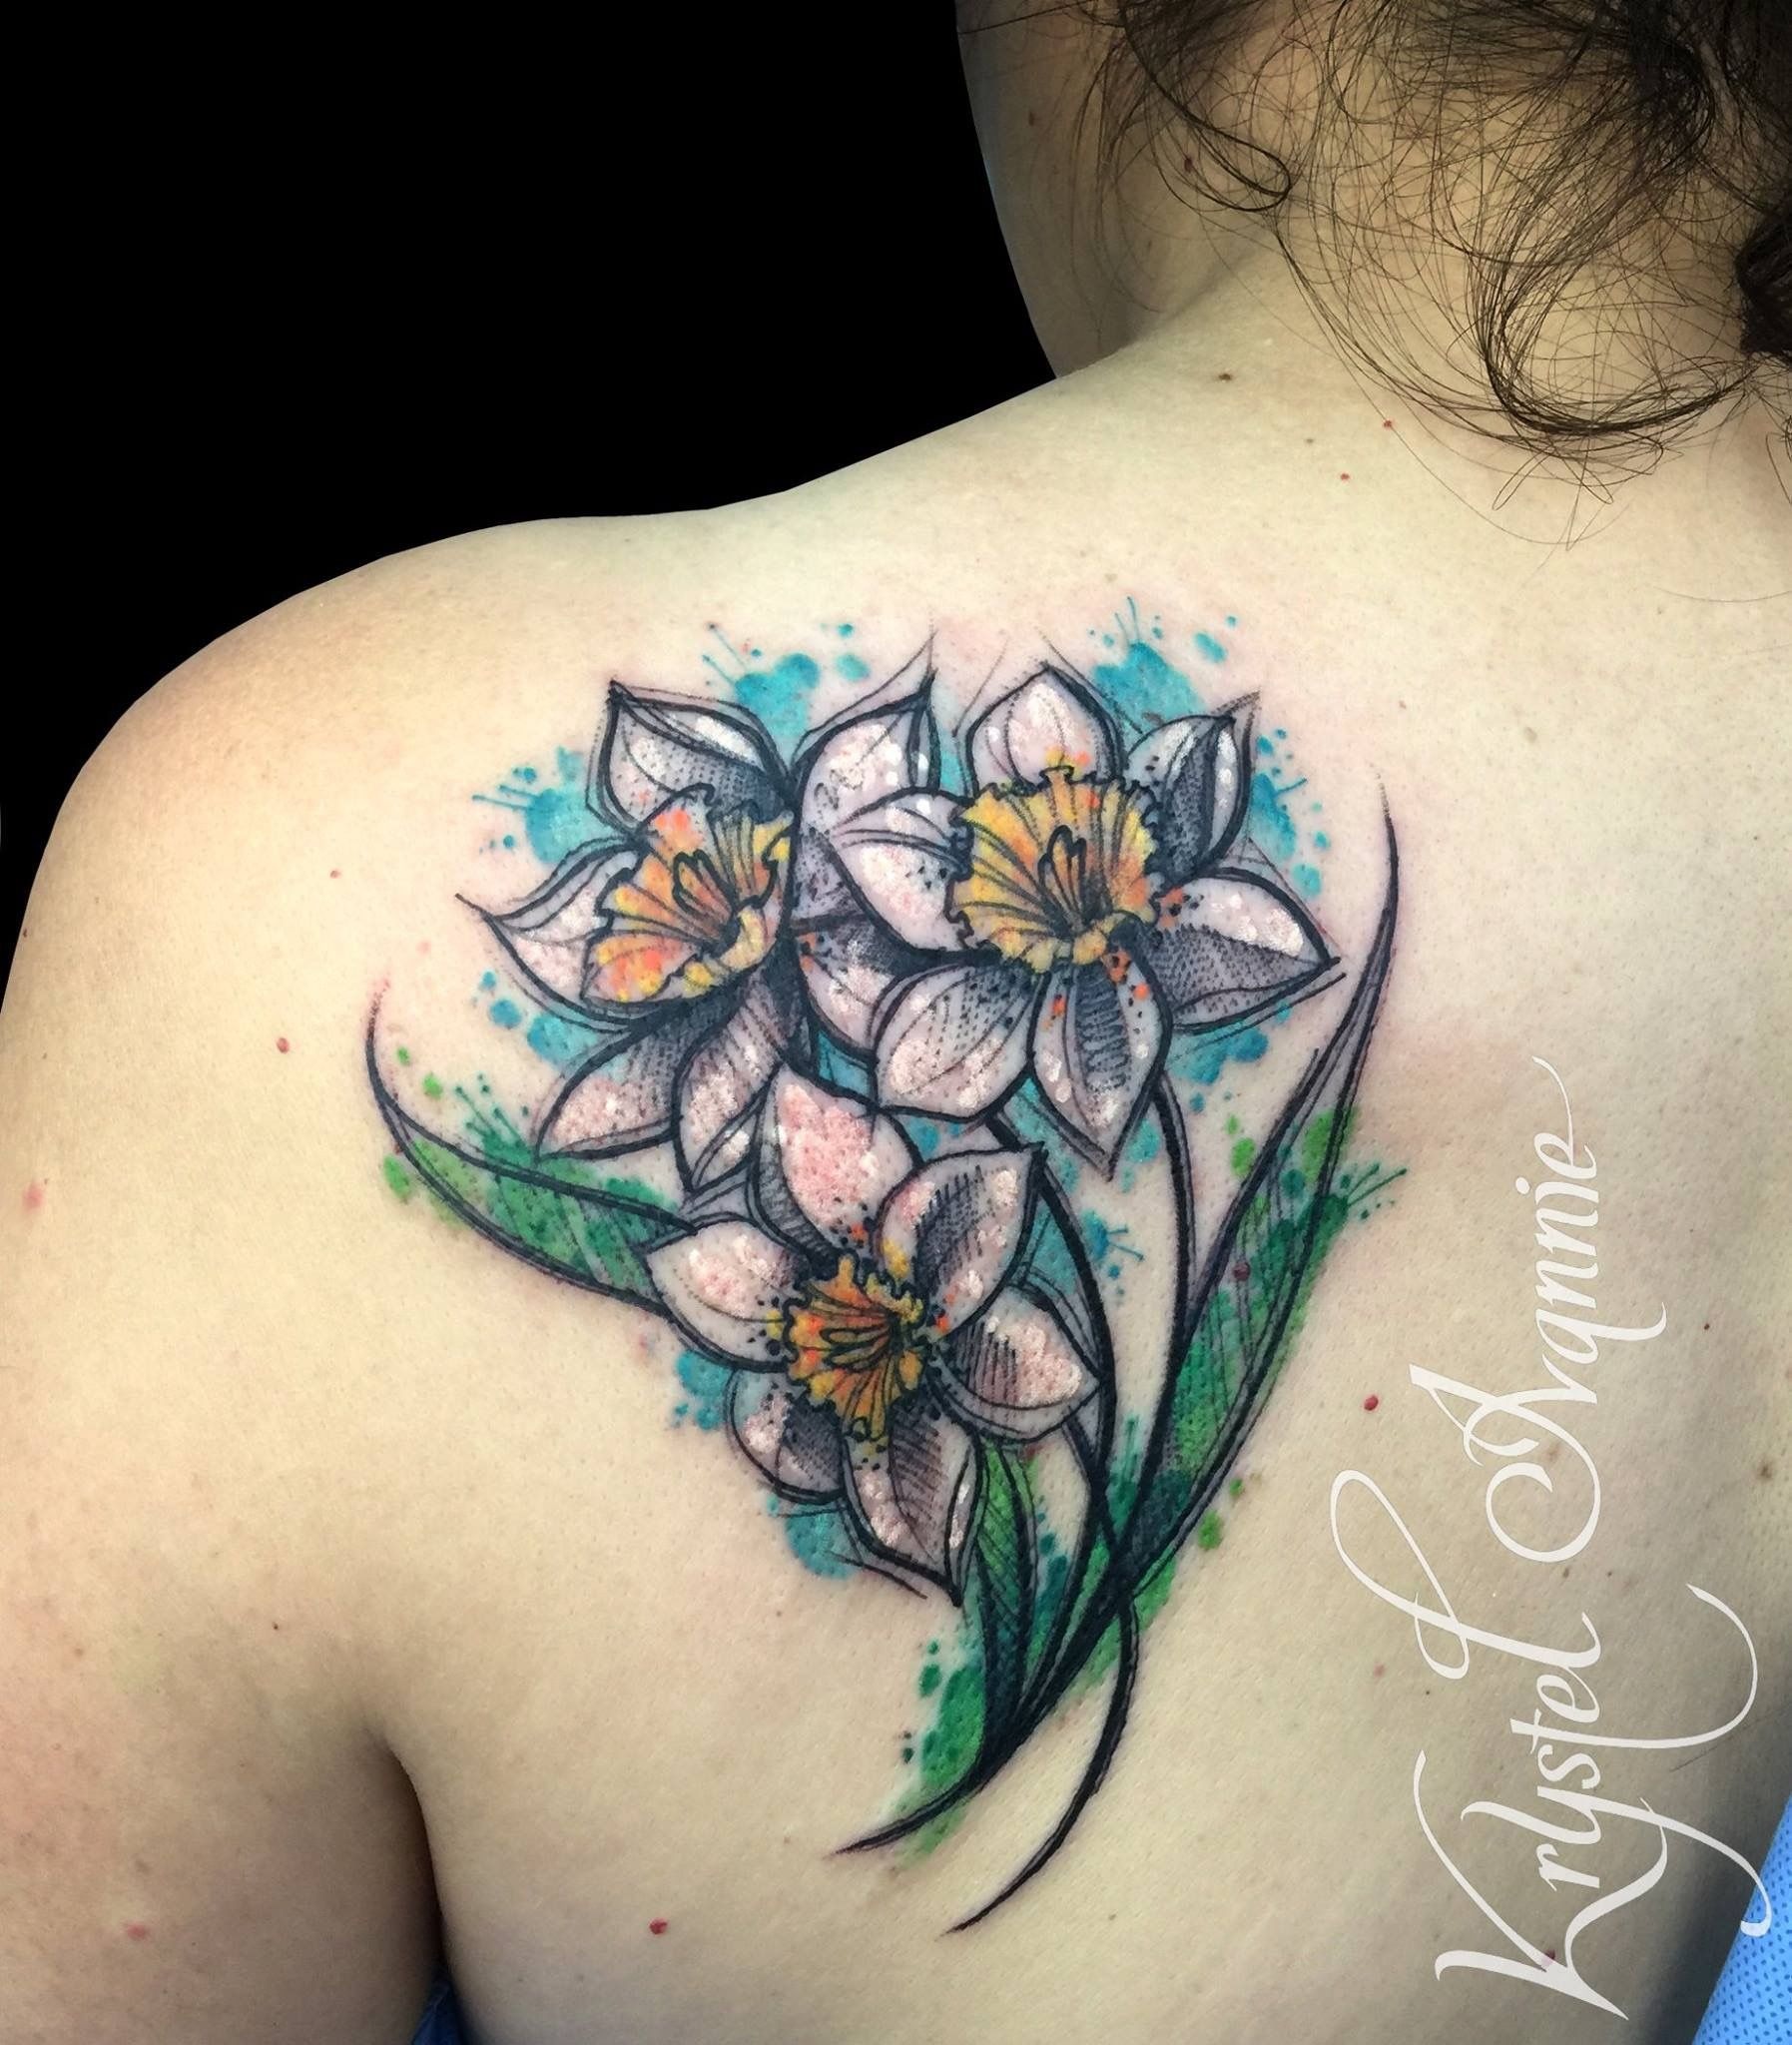 Flowertattoo Hashtag Instagram Posts Videos Stories On Tattoosgram Com Narcissus Flower Tattoos Birth Flower Tattoos Daffodil Tattoo